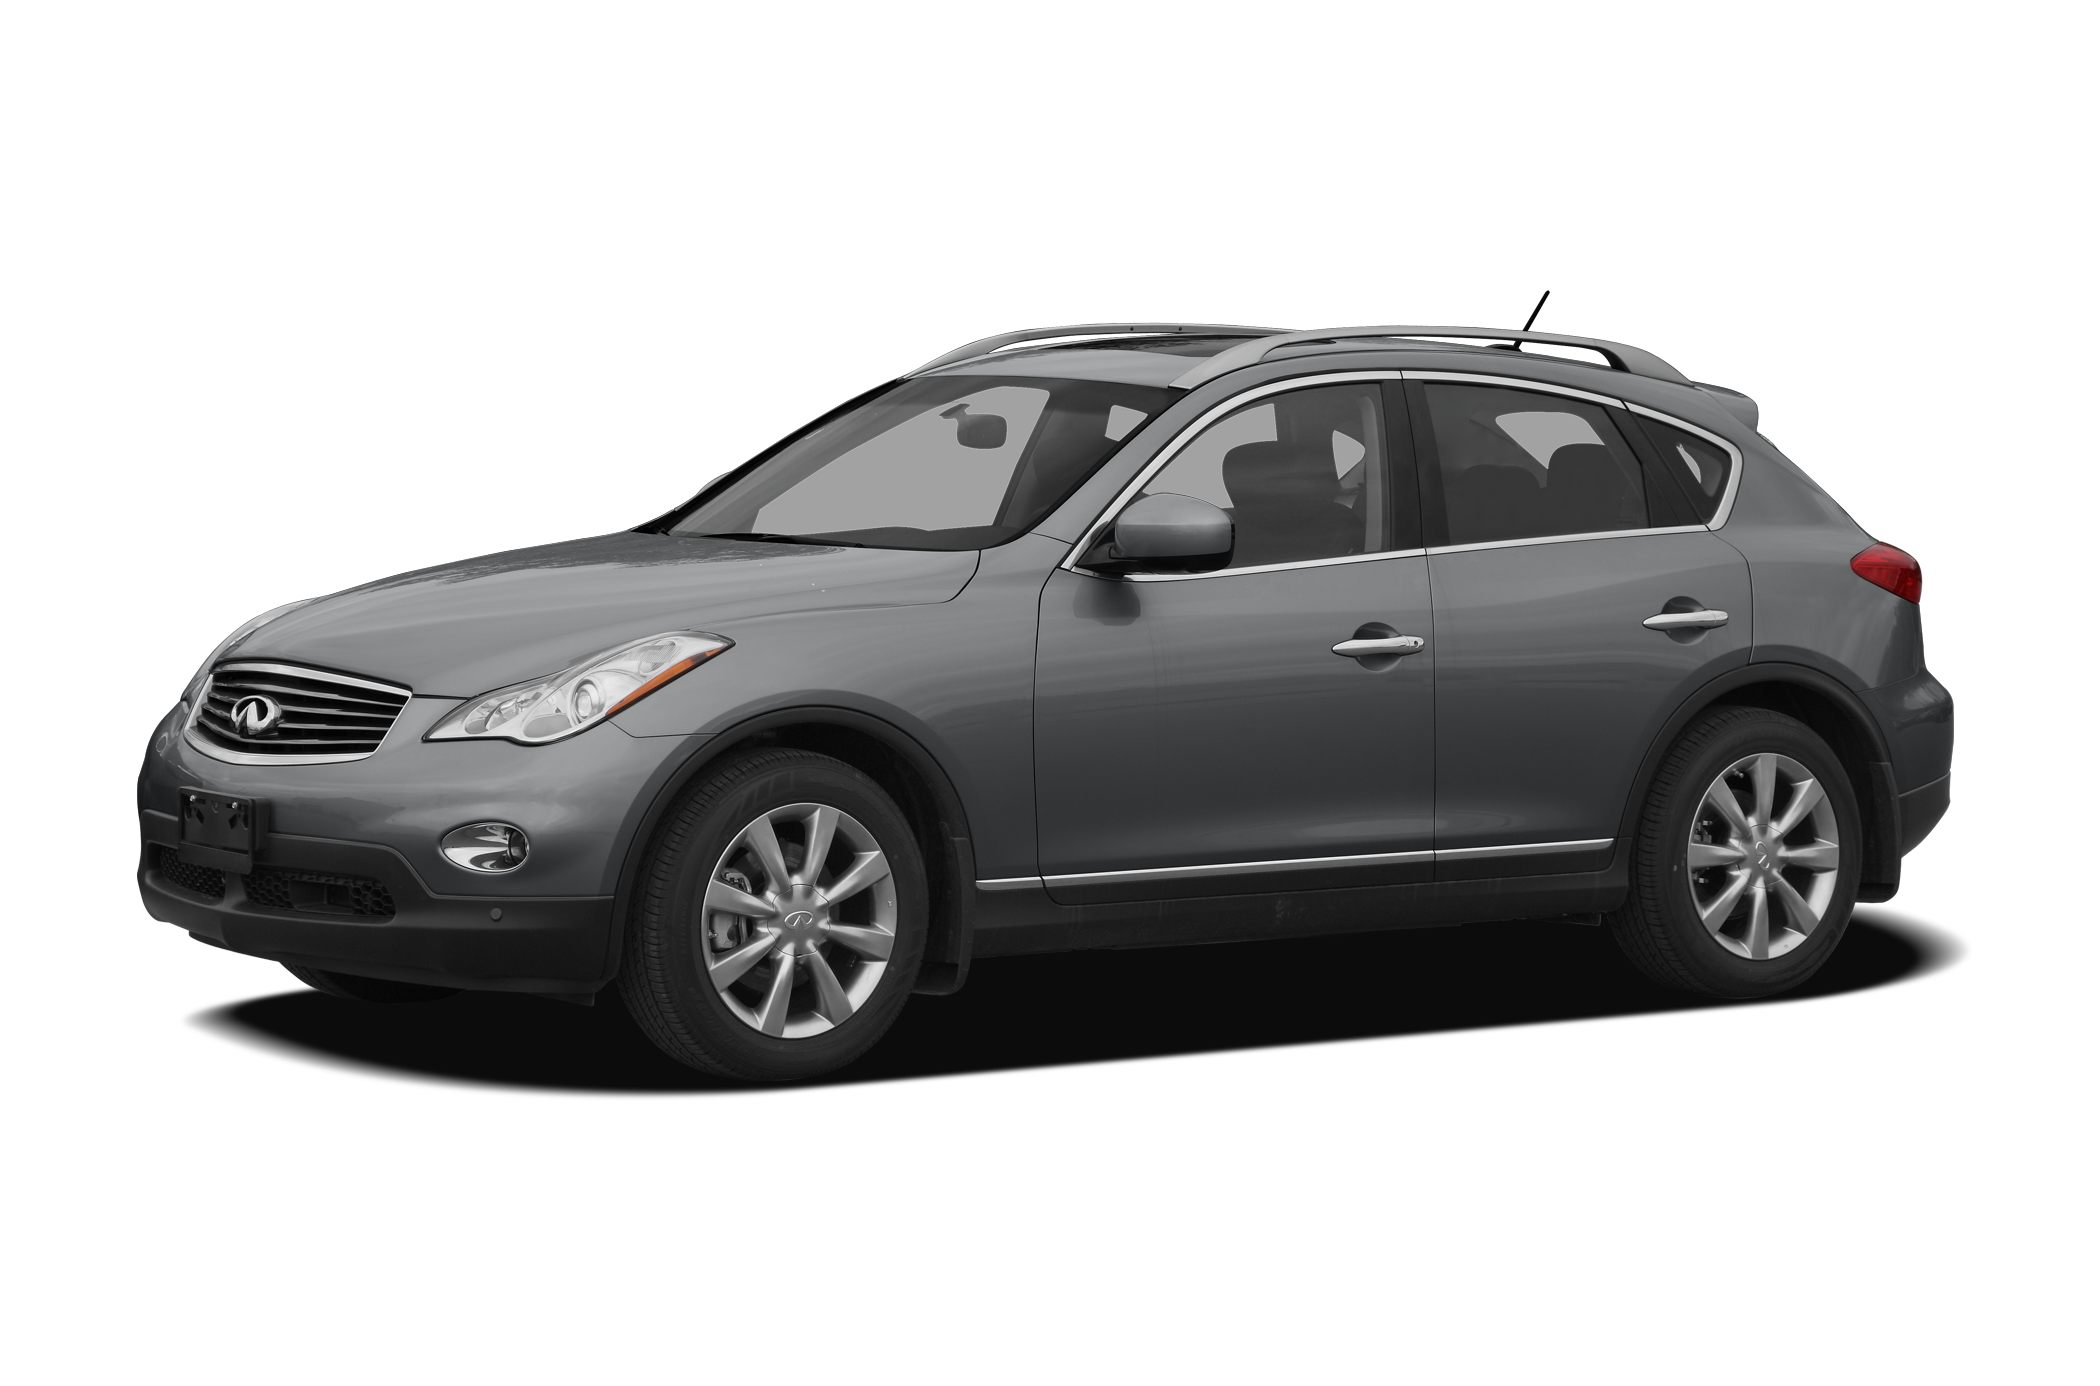 2008 Infiniti EX35 Base 2008 Infiniti EX35 It just doesnt get any better This Vehicle is simply